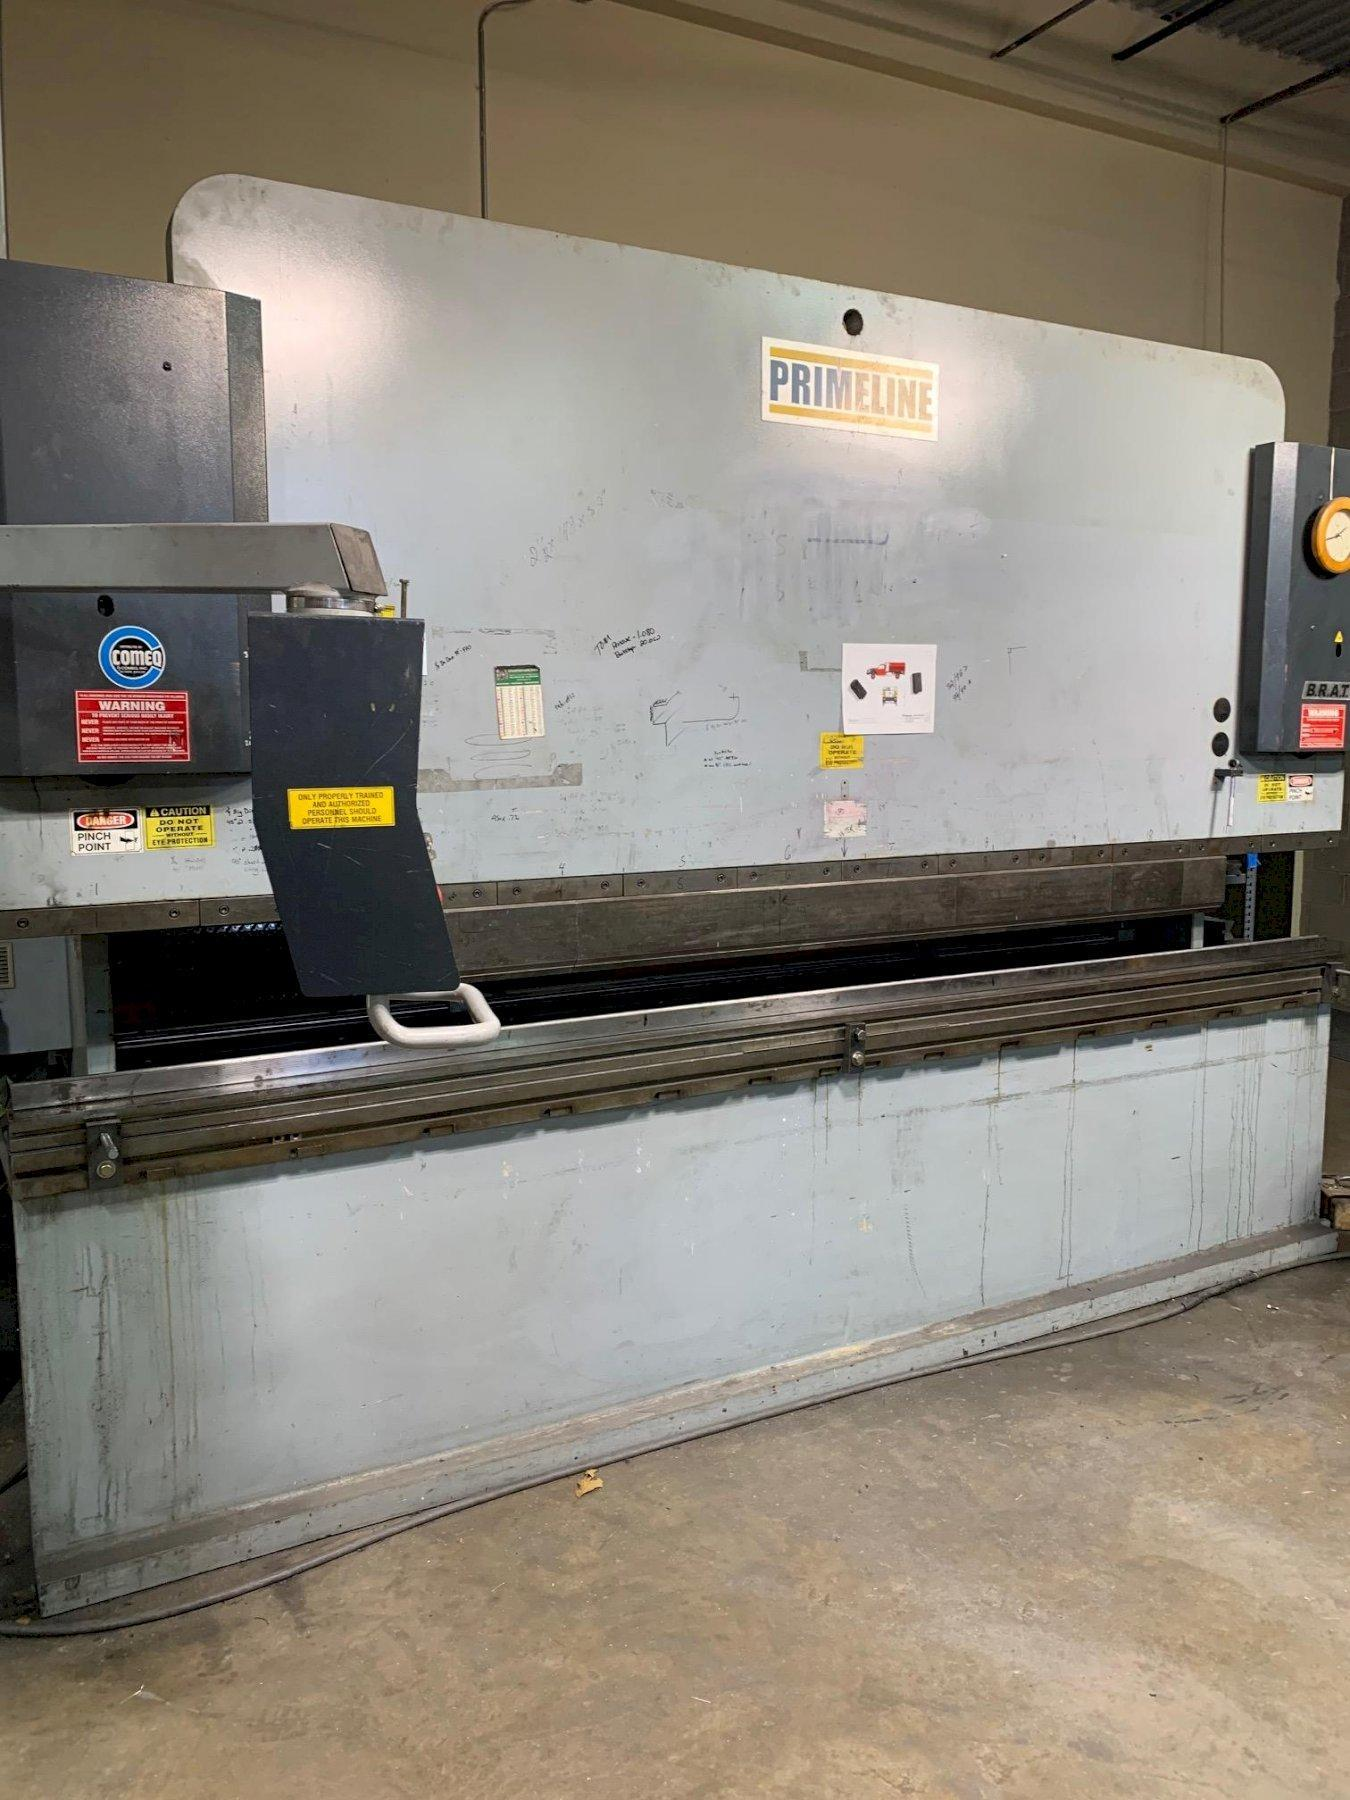 175 Ton x 12 Ft Primeline Hydraulic Press Brake Model 175 x 12